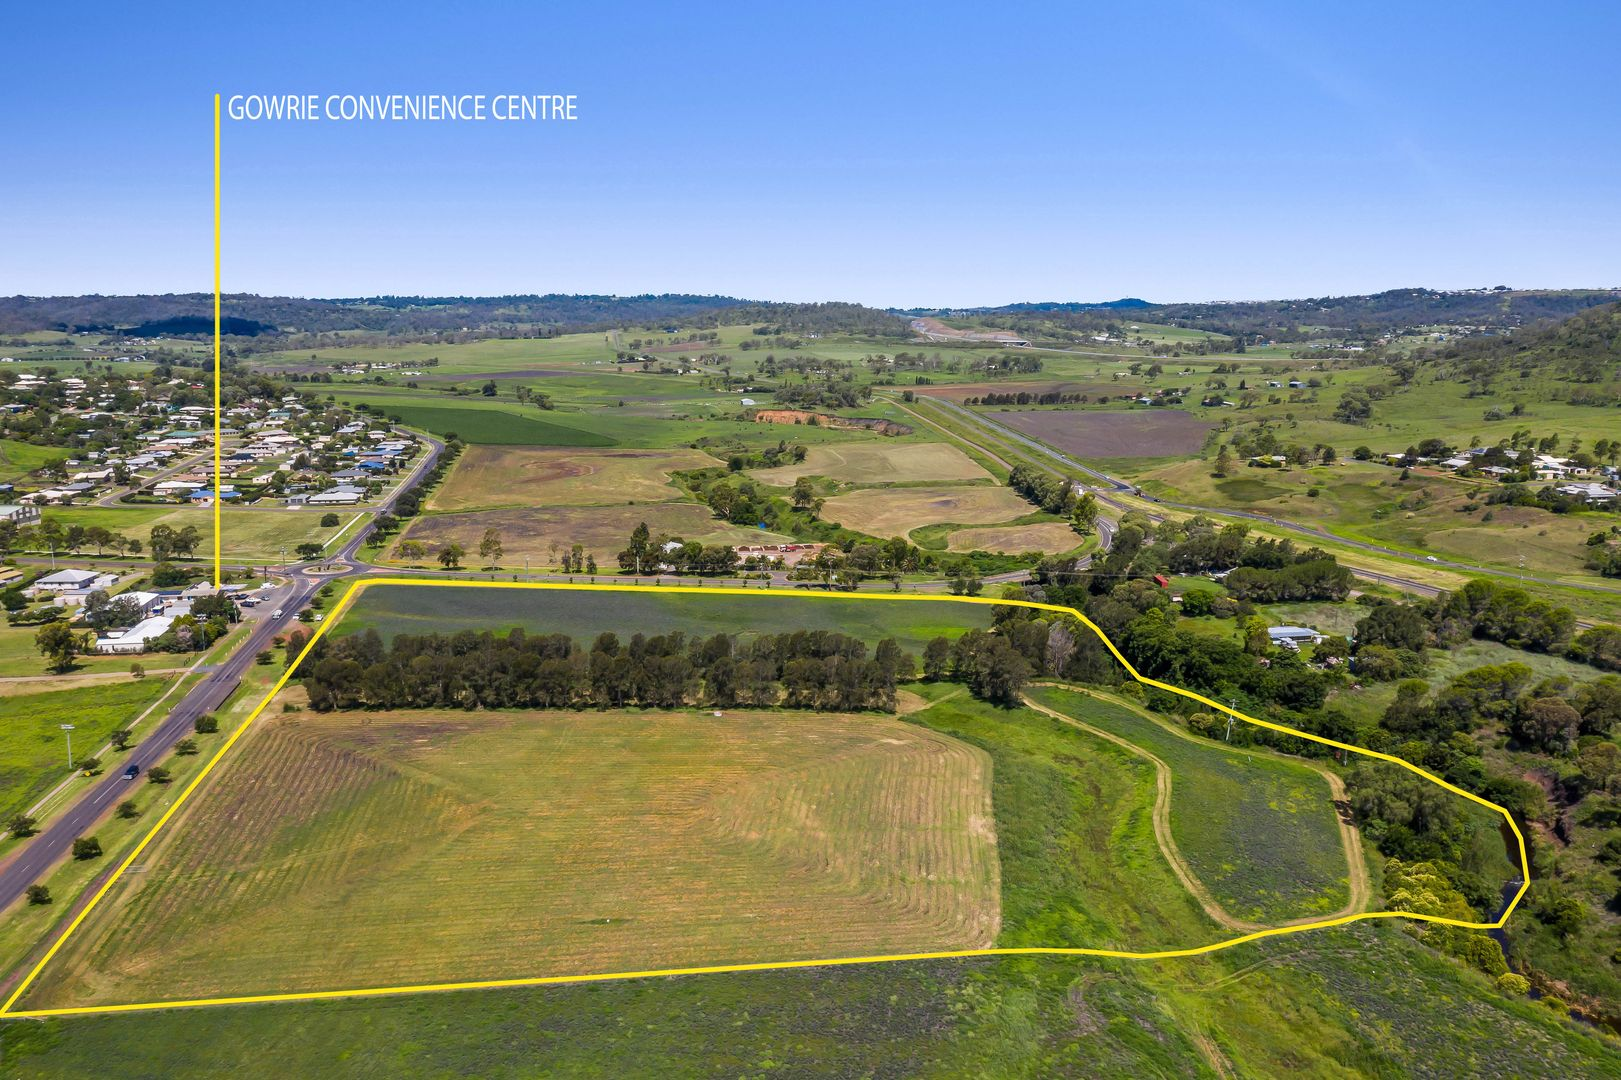 Lot 38 Cnr Old Homebush and Gowrie Lilyvale Roads, Gowrie Junction QLD 4352, Image 0